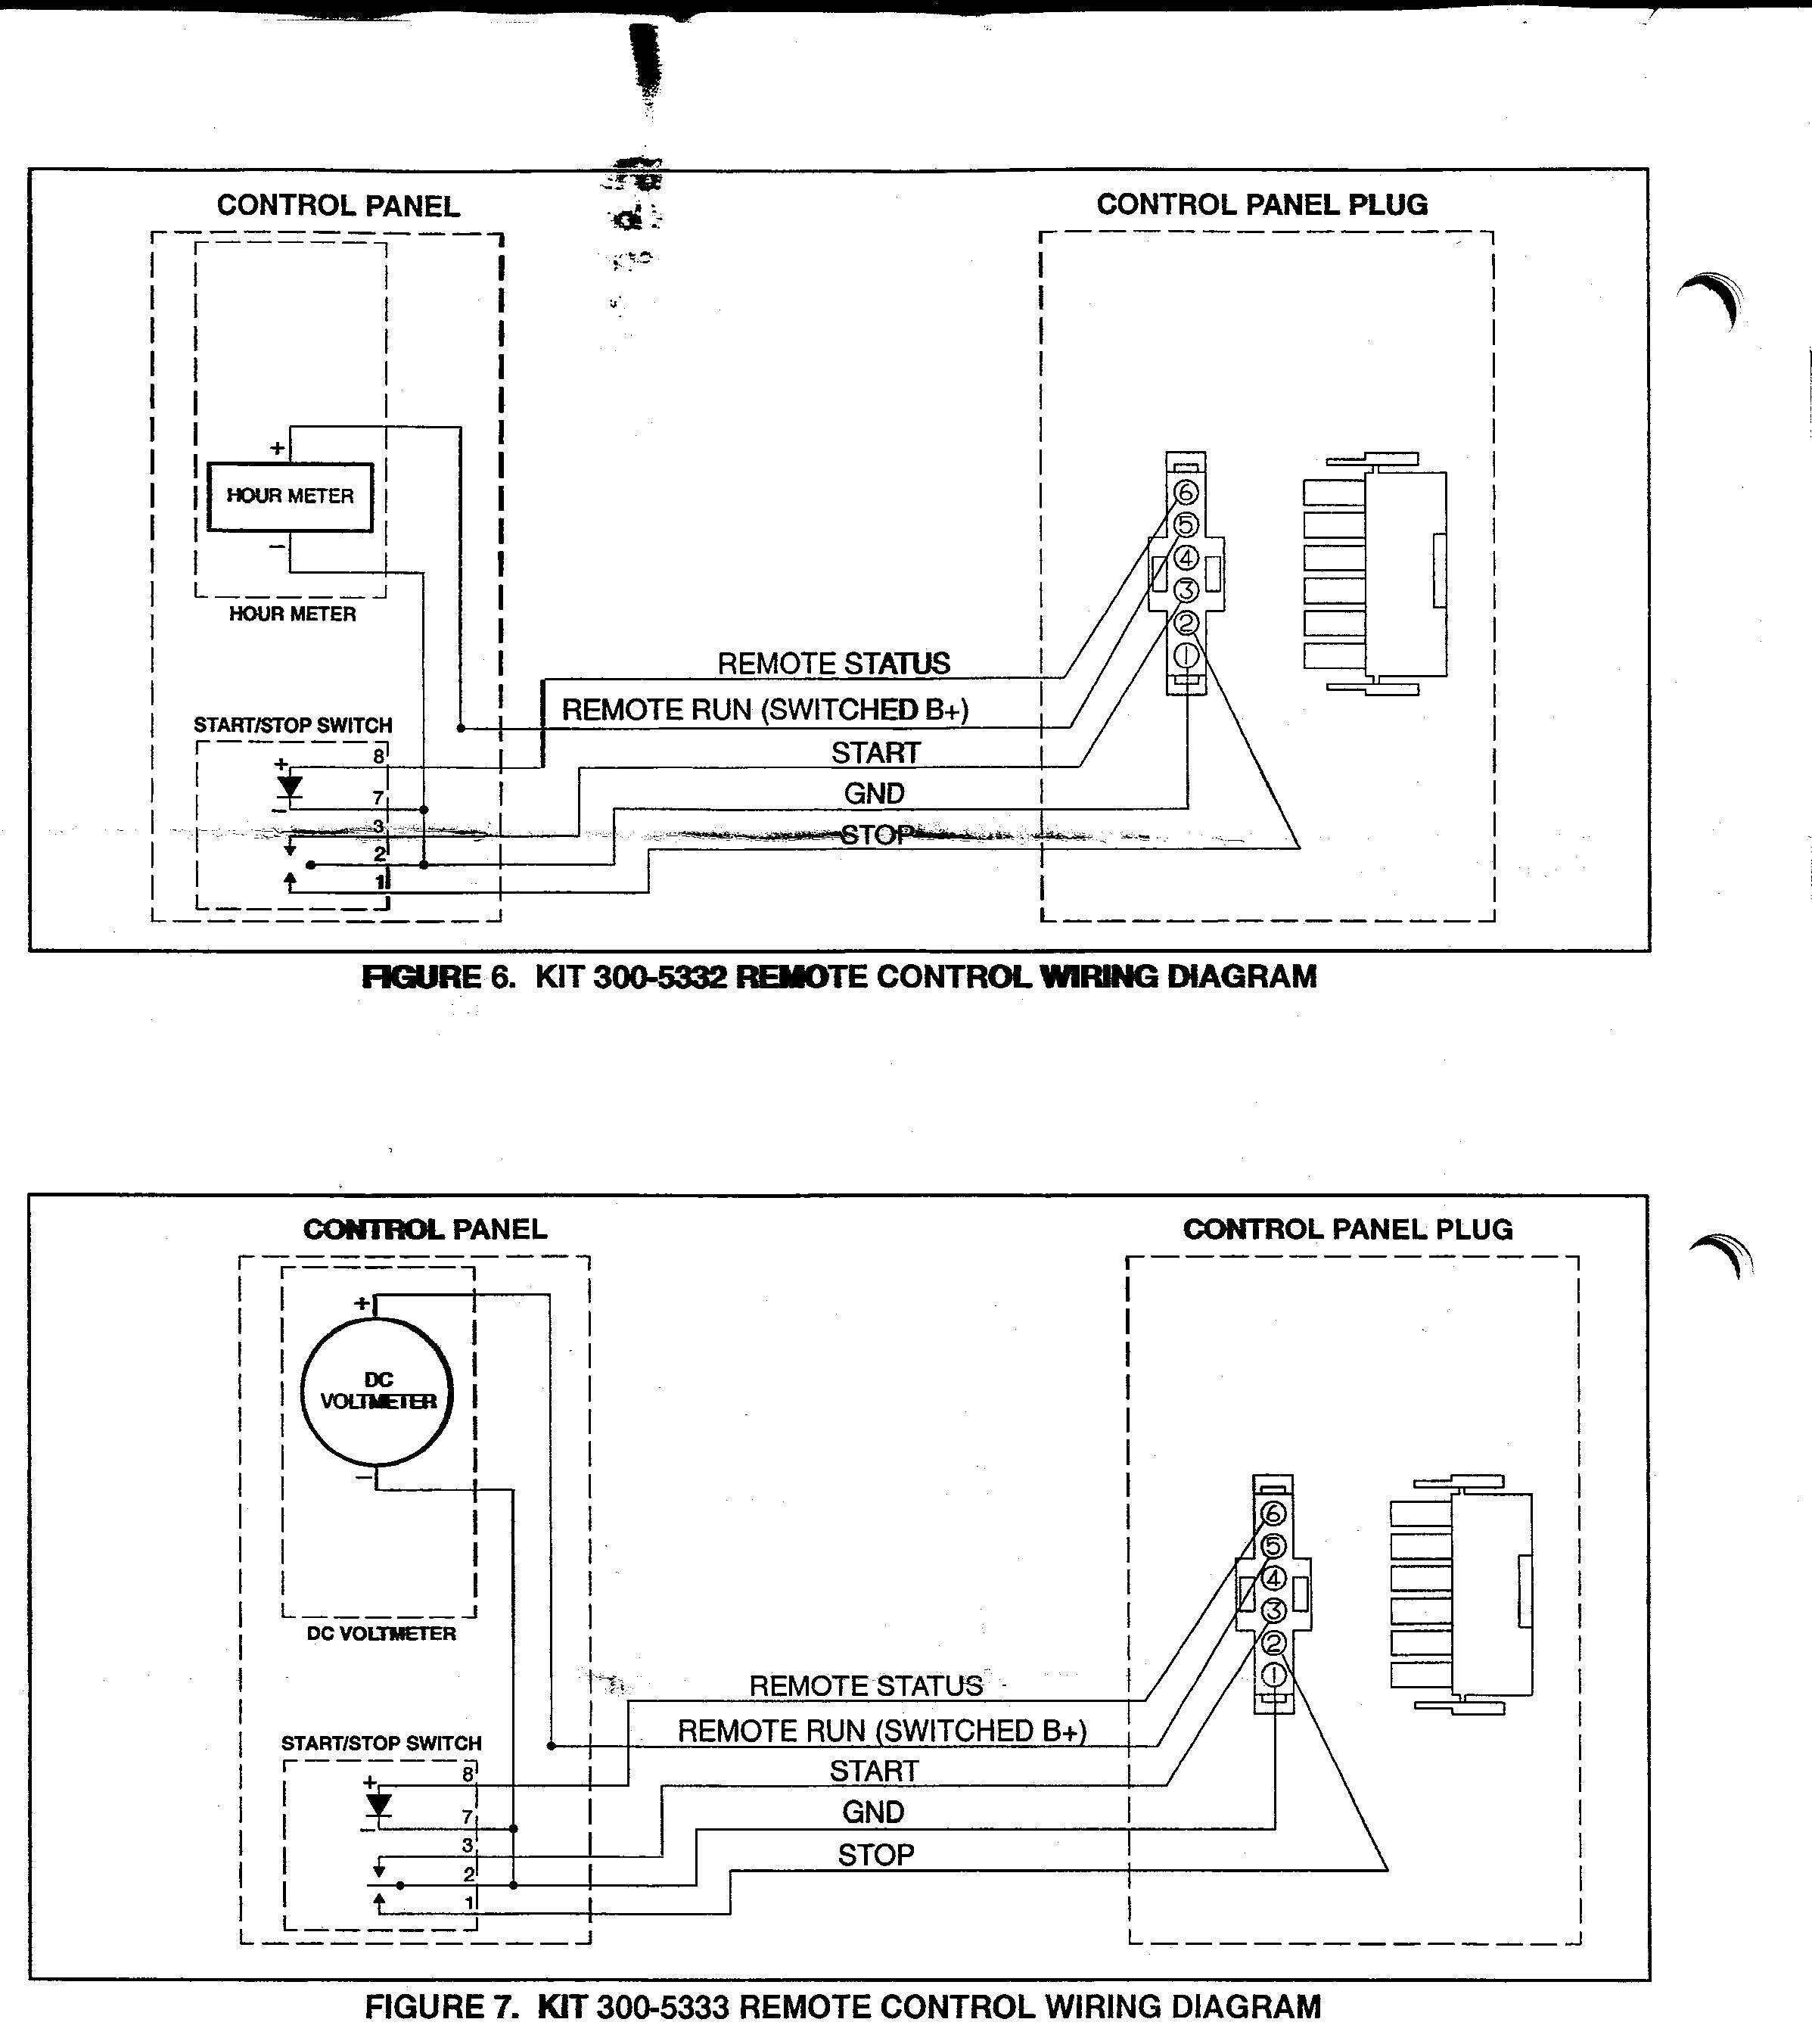 Wiring Diagram Auto Start #diagram #diagramtemplate ... on yugo starter diagram, jeep liberty transmission solenoid, f150 starter diagram, saturn starter diagram, truck starter diagram, mini starter diagram, mitsubishi starter diagram, automotive starter diagram, isuzu starter diagram, gmc starter diagram, sterling starter diagram, gm starter diagram, 2005 grand cherokee starter location diagram, cadillac starter diagram, toyota starter diagram, jeep patriot oil filter location, john deere starter diagram, dodge journey starter diagram, ford ranger starter diagram, camaro starter diagram,